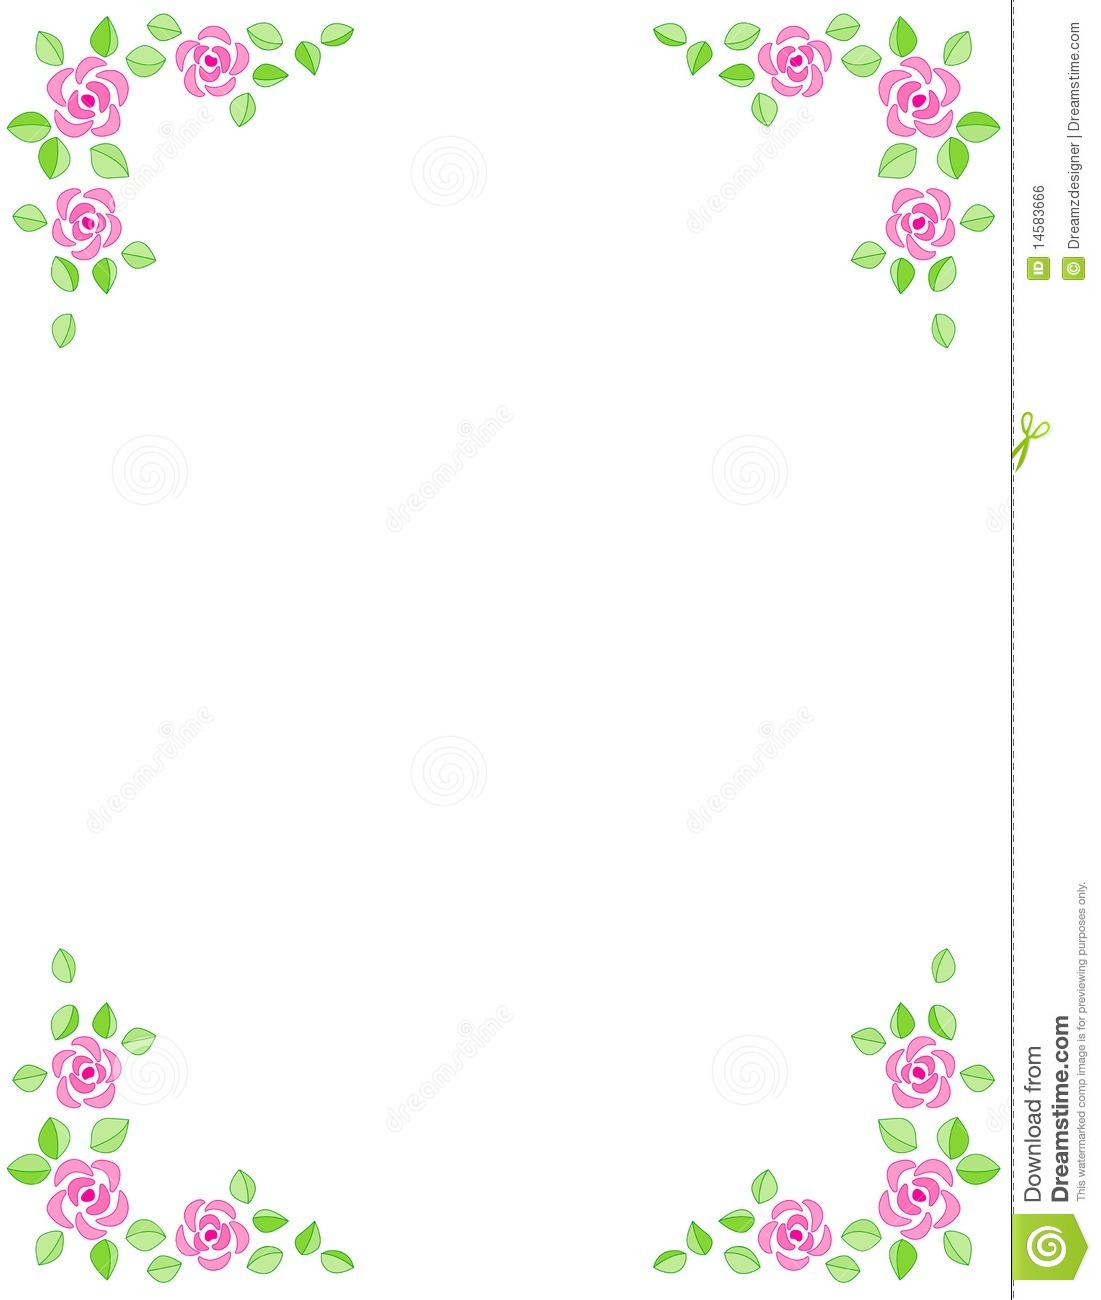 Wedding Invitation Clip Art is the best ideas you have to choose for invitation example